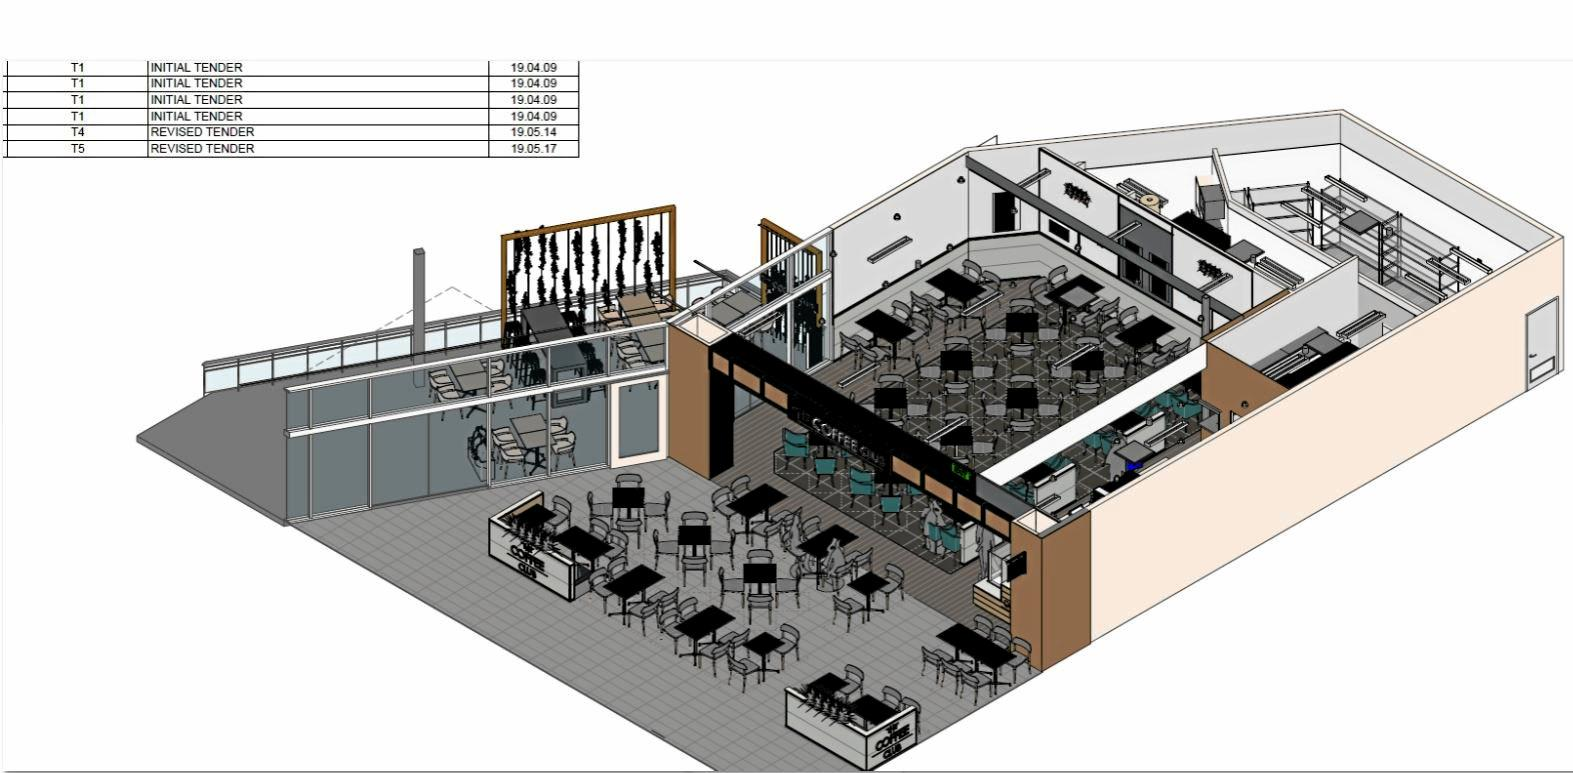 A detailed plan of new Coffee Club cafe opening in Gympie central Shopping Centre.